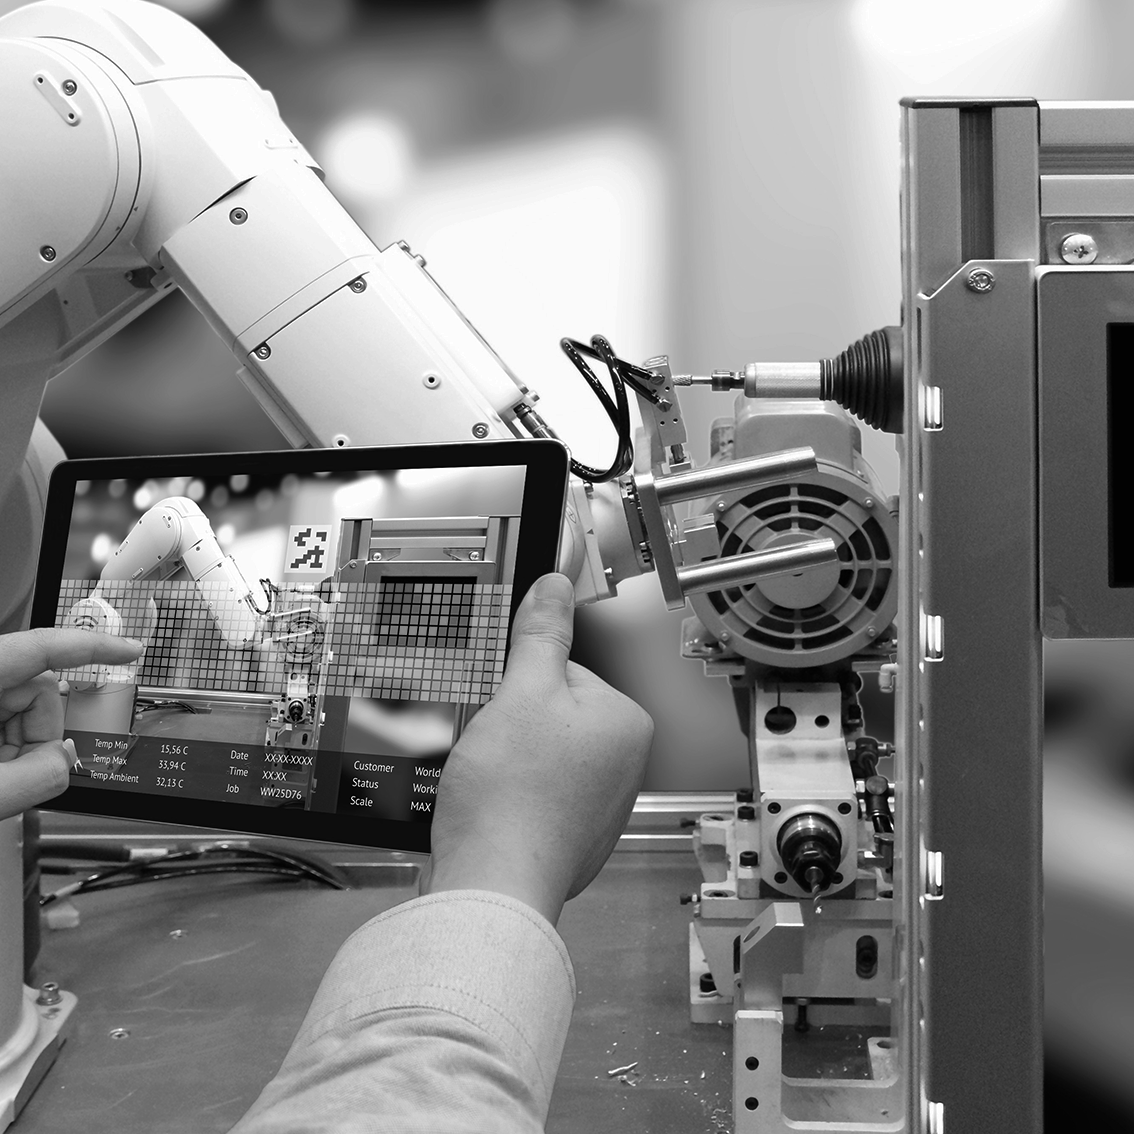 Industry 4.0: New Partnership to Transform Manufacturing